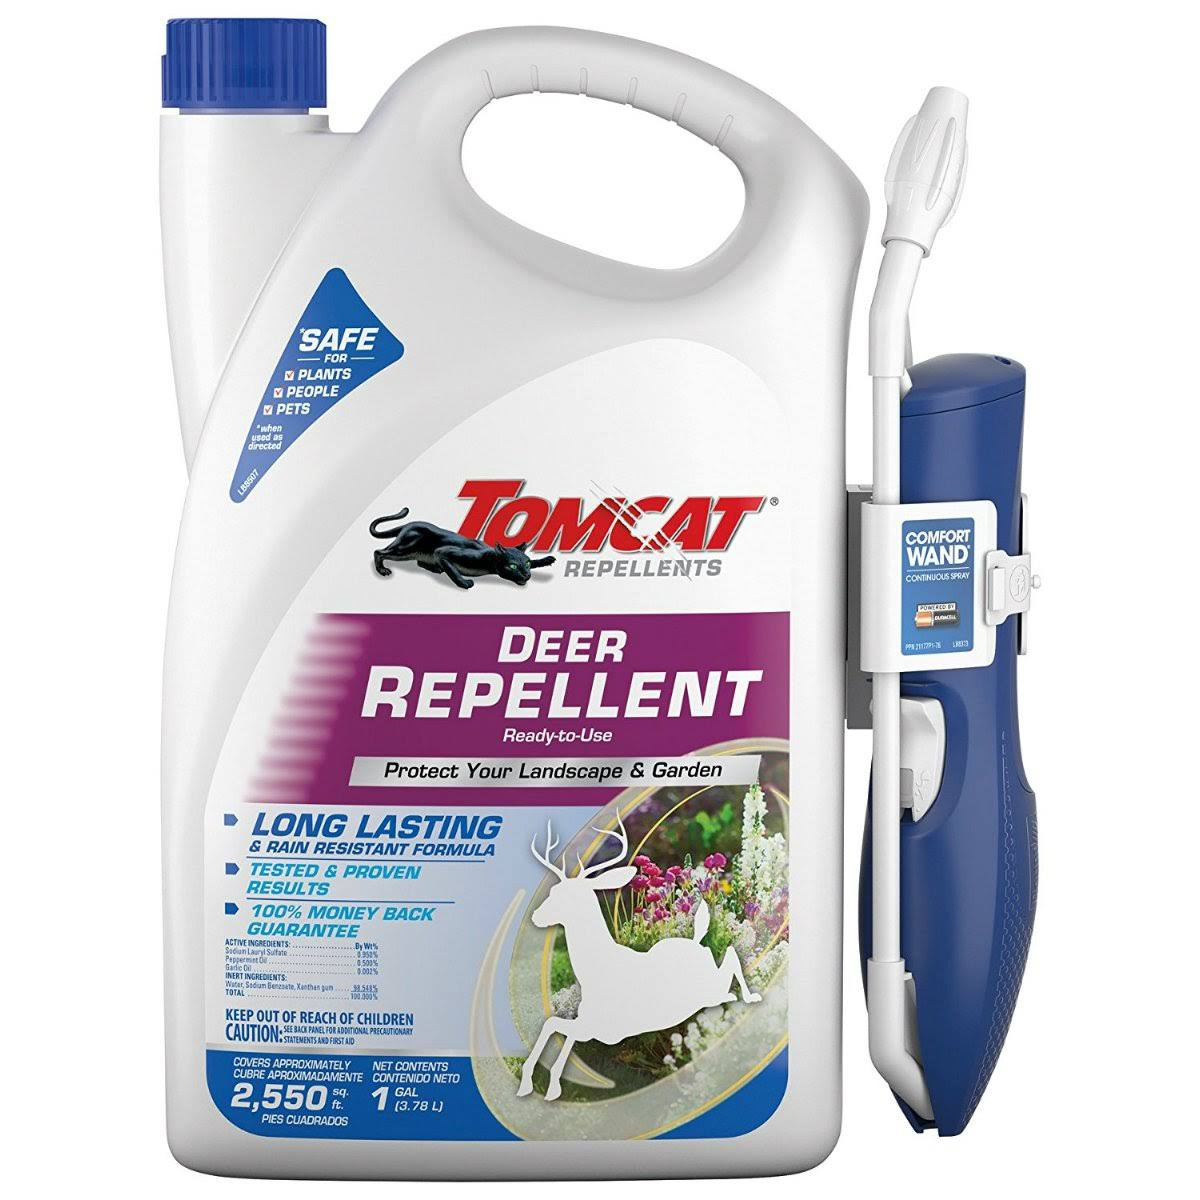 Tomcat Deer Repellent Spray - 1 Gallon